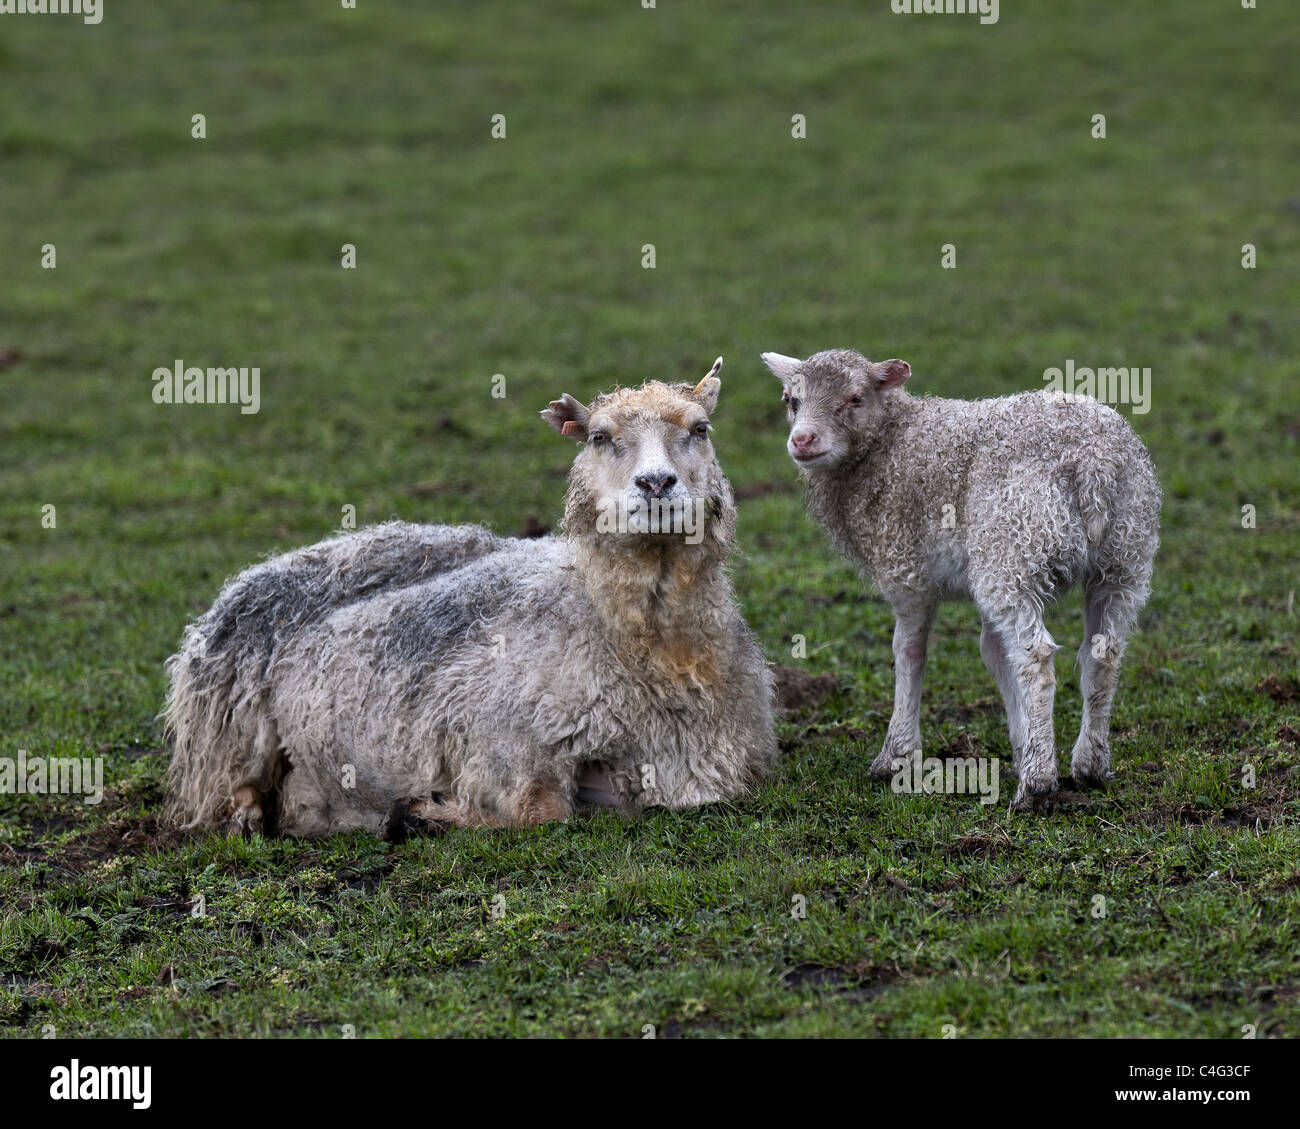 Ewe and lamb dirty from ash fall, Grimsvotn volcanic eruption, Iceland - Stock Image